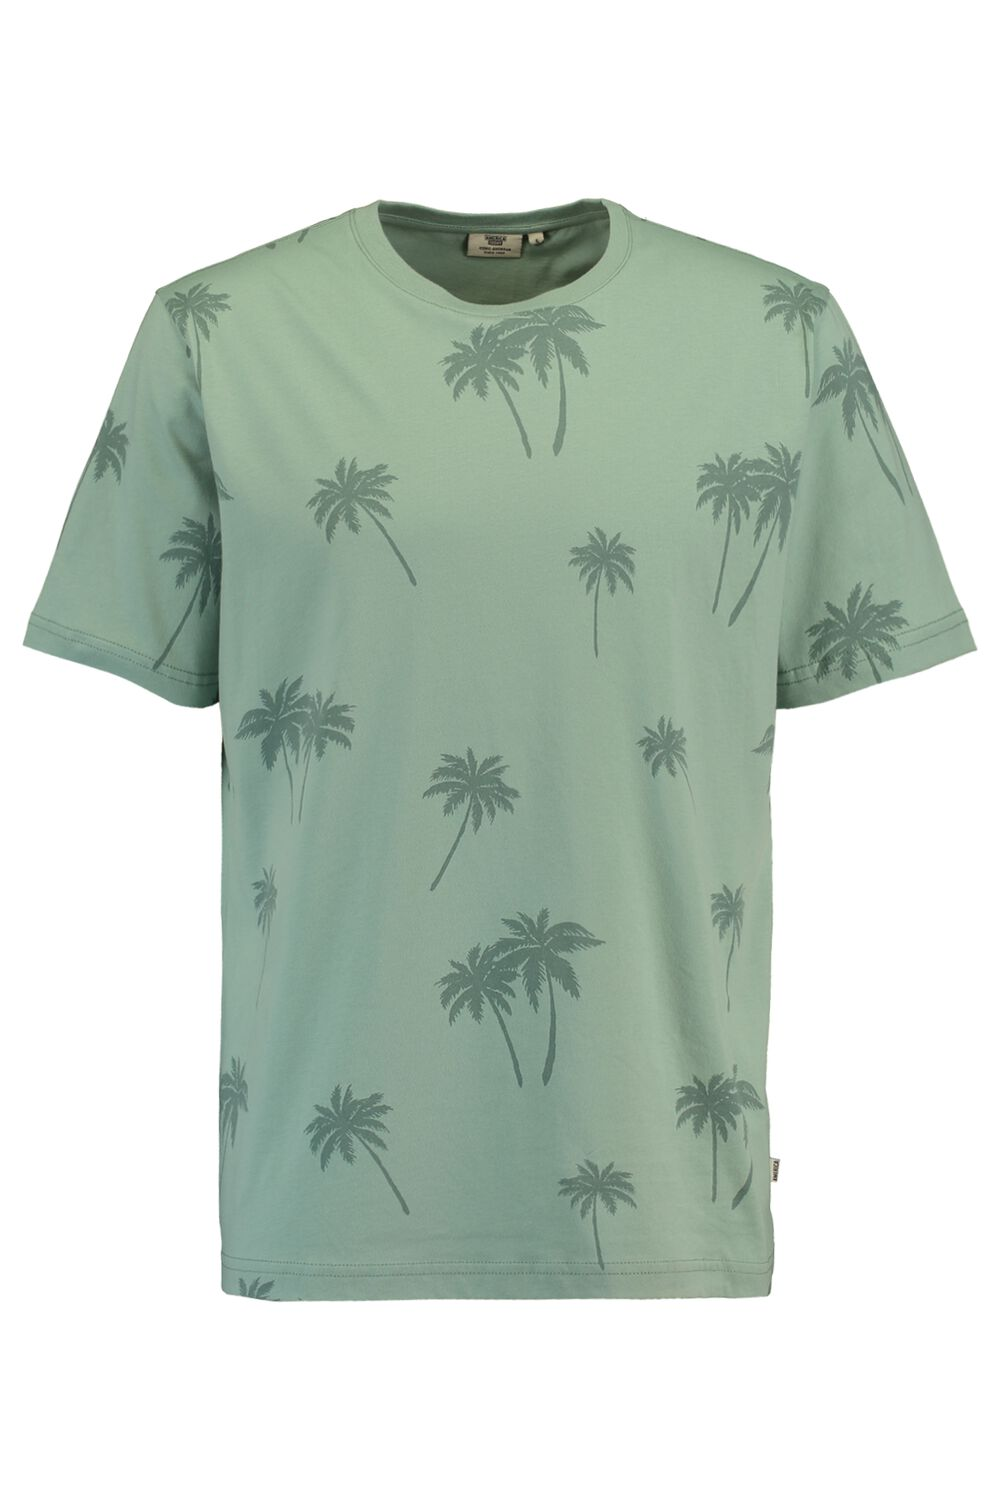 America Today Heren T-shirt Emmanuel Palm Groen